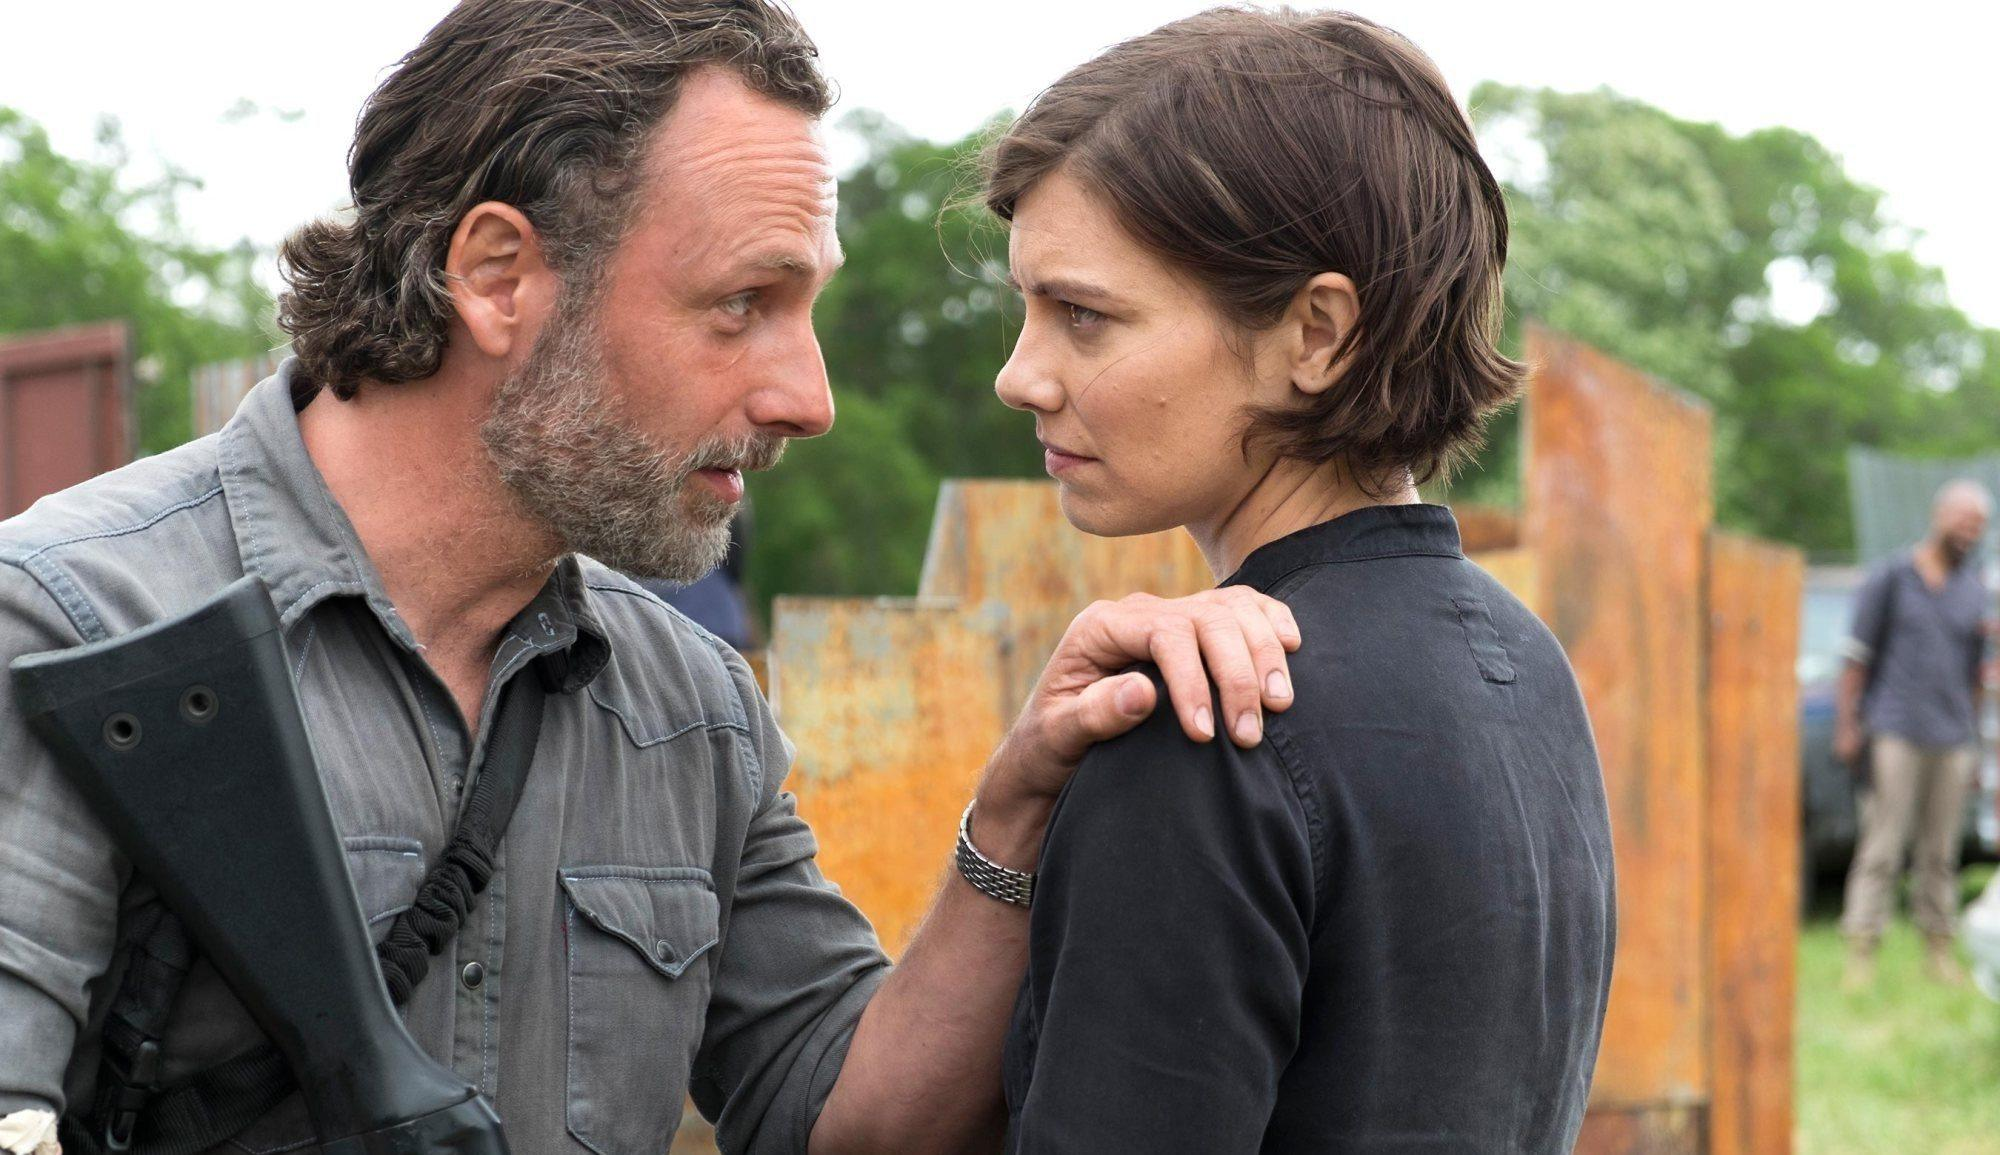 Rick puts his hand on Maggie's shoulder and holds a gun in another hand